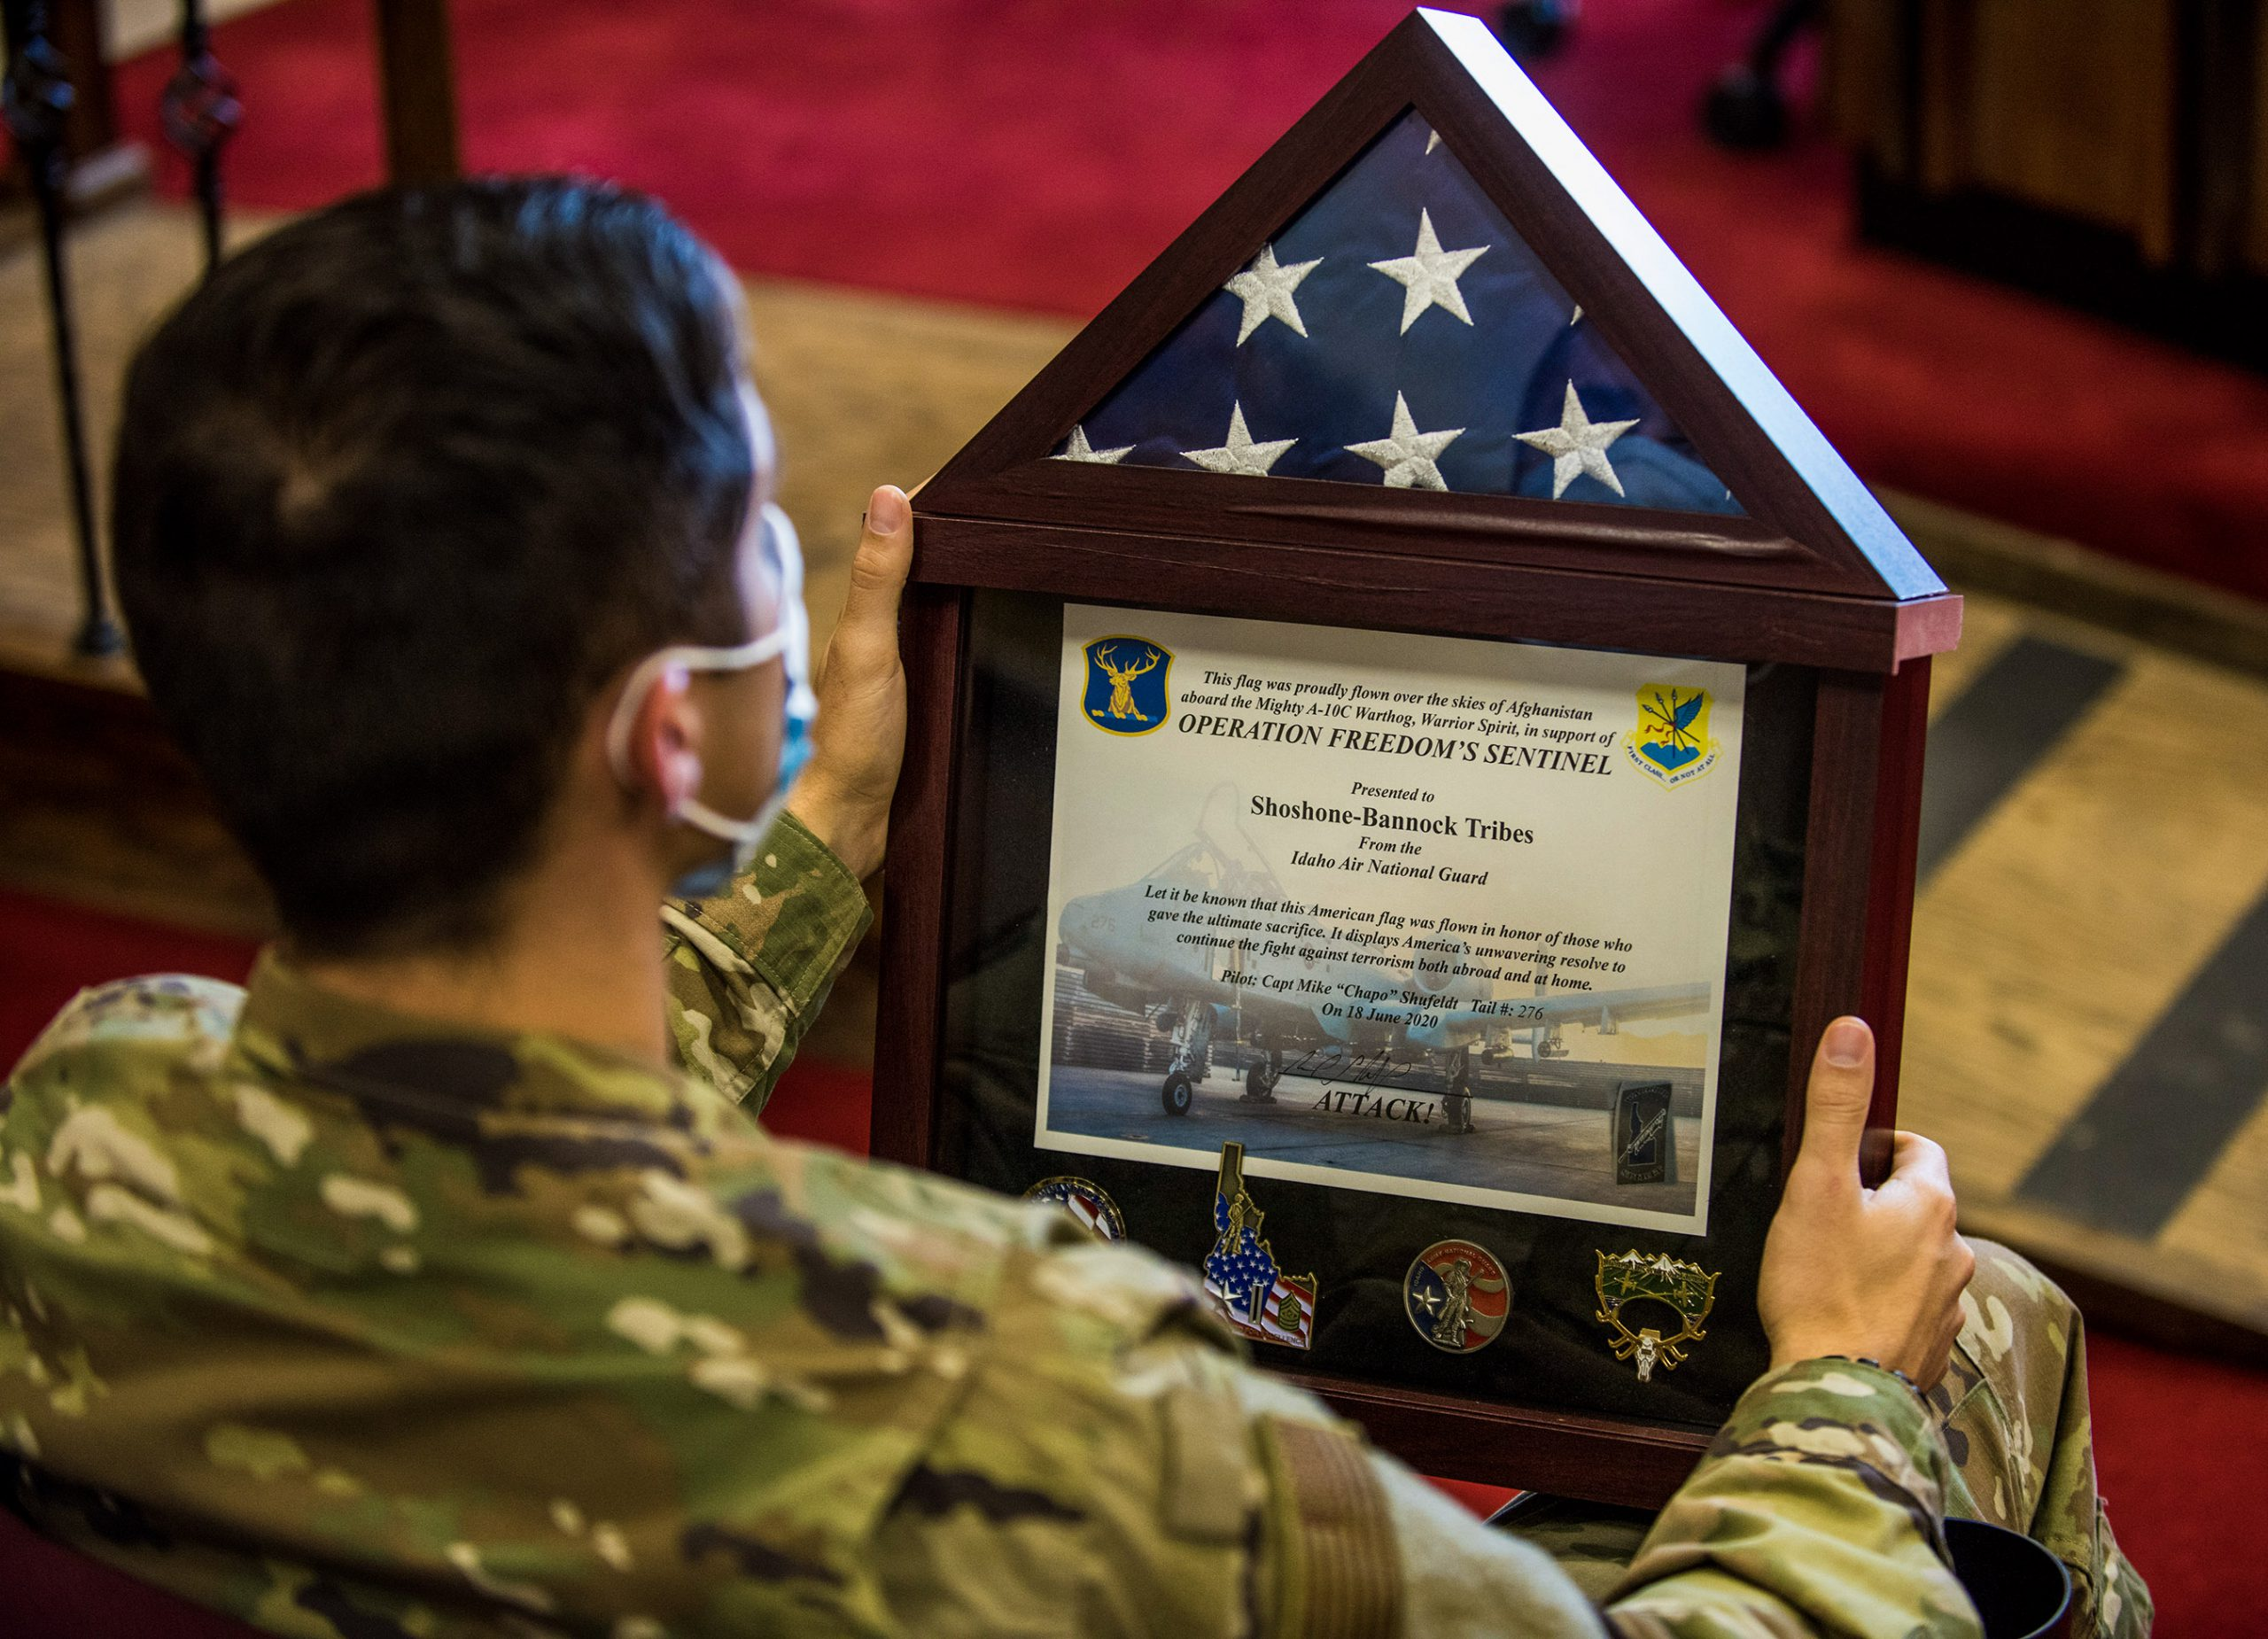 U.S. flag flown over Afghanistan dedicated to Shoshone-Bannock Tribes